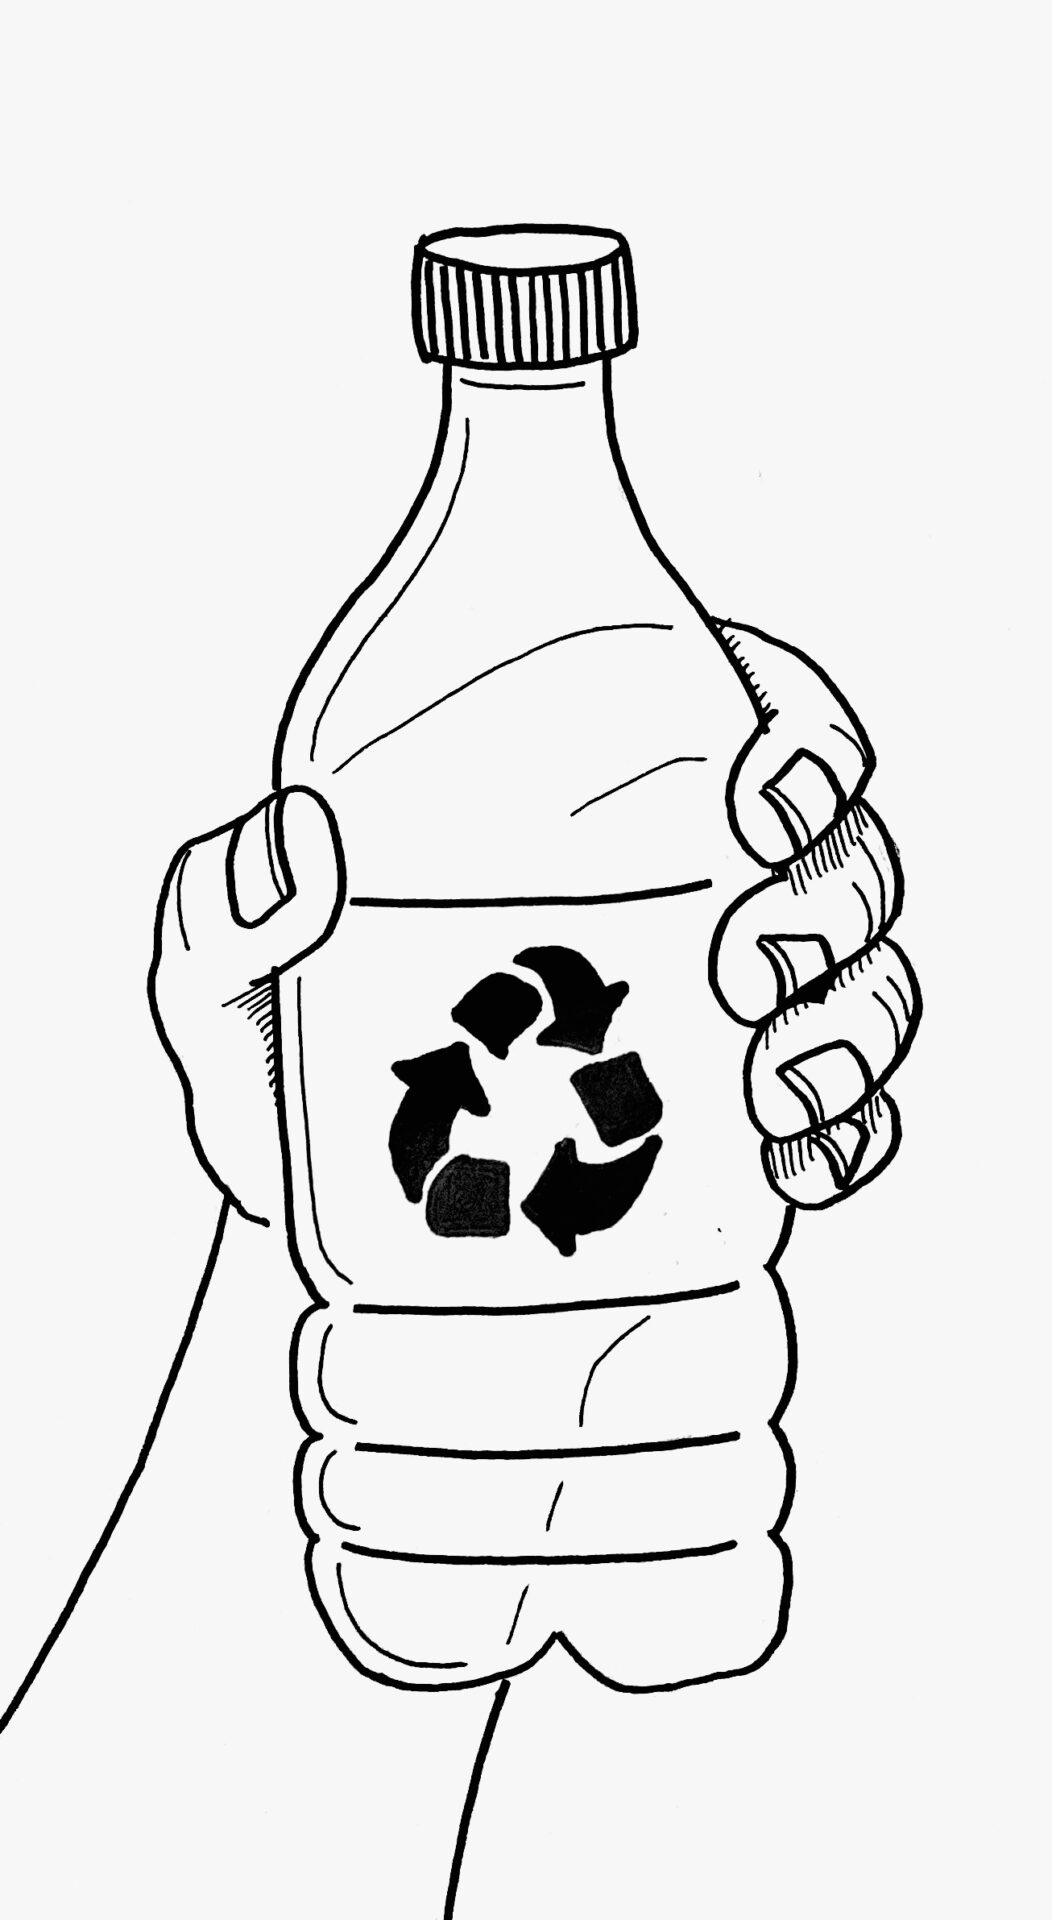 An image of a plastic bottle with a recycling symbol on the label.